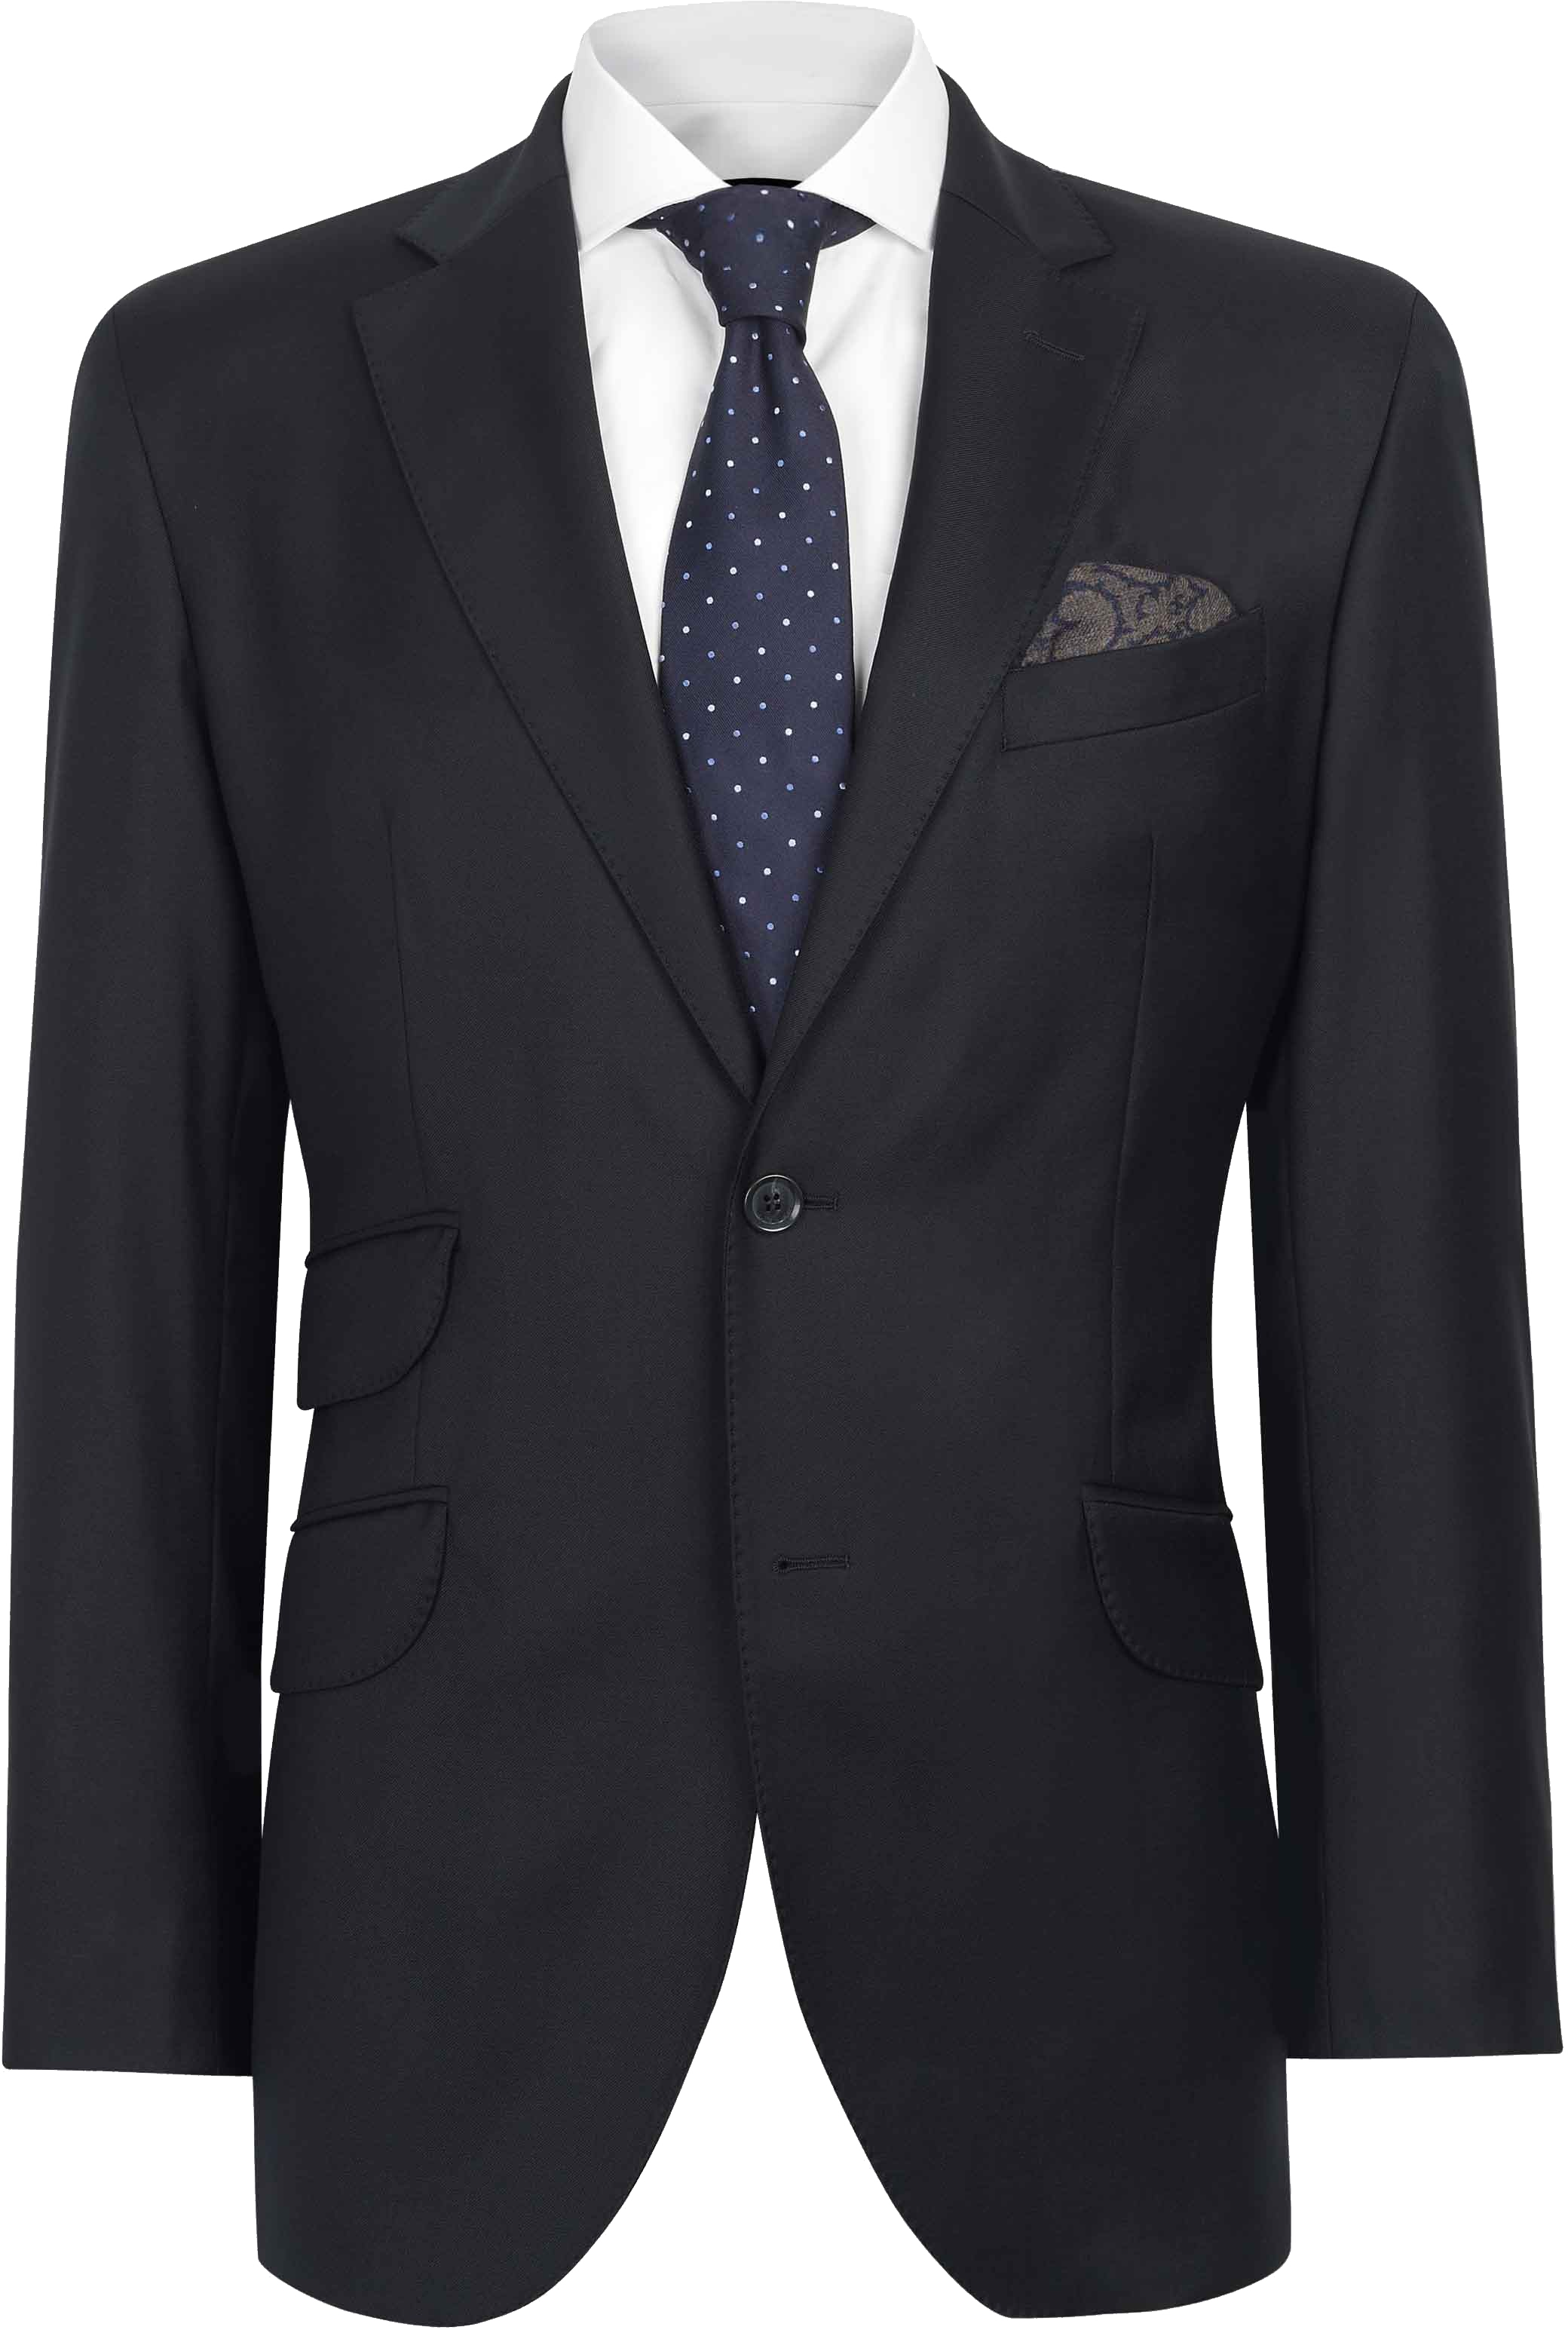 suit and tie png